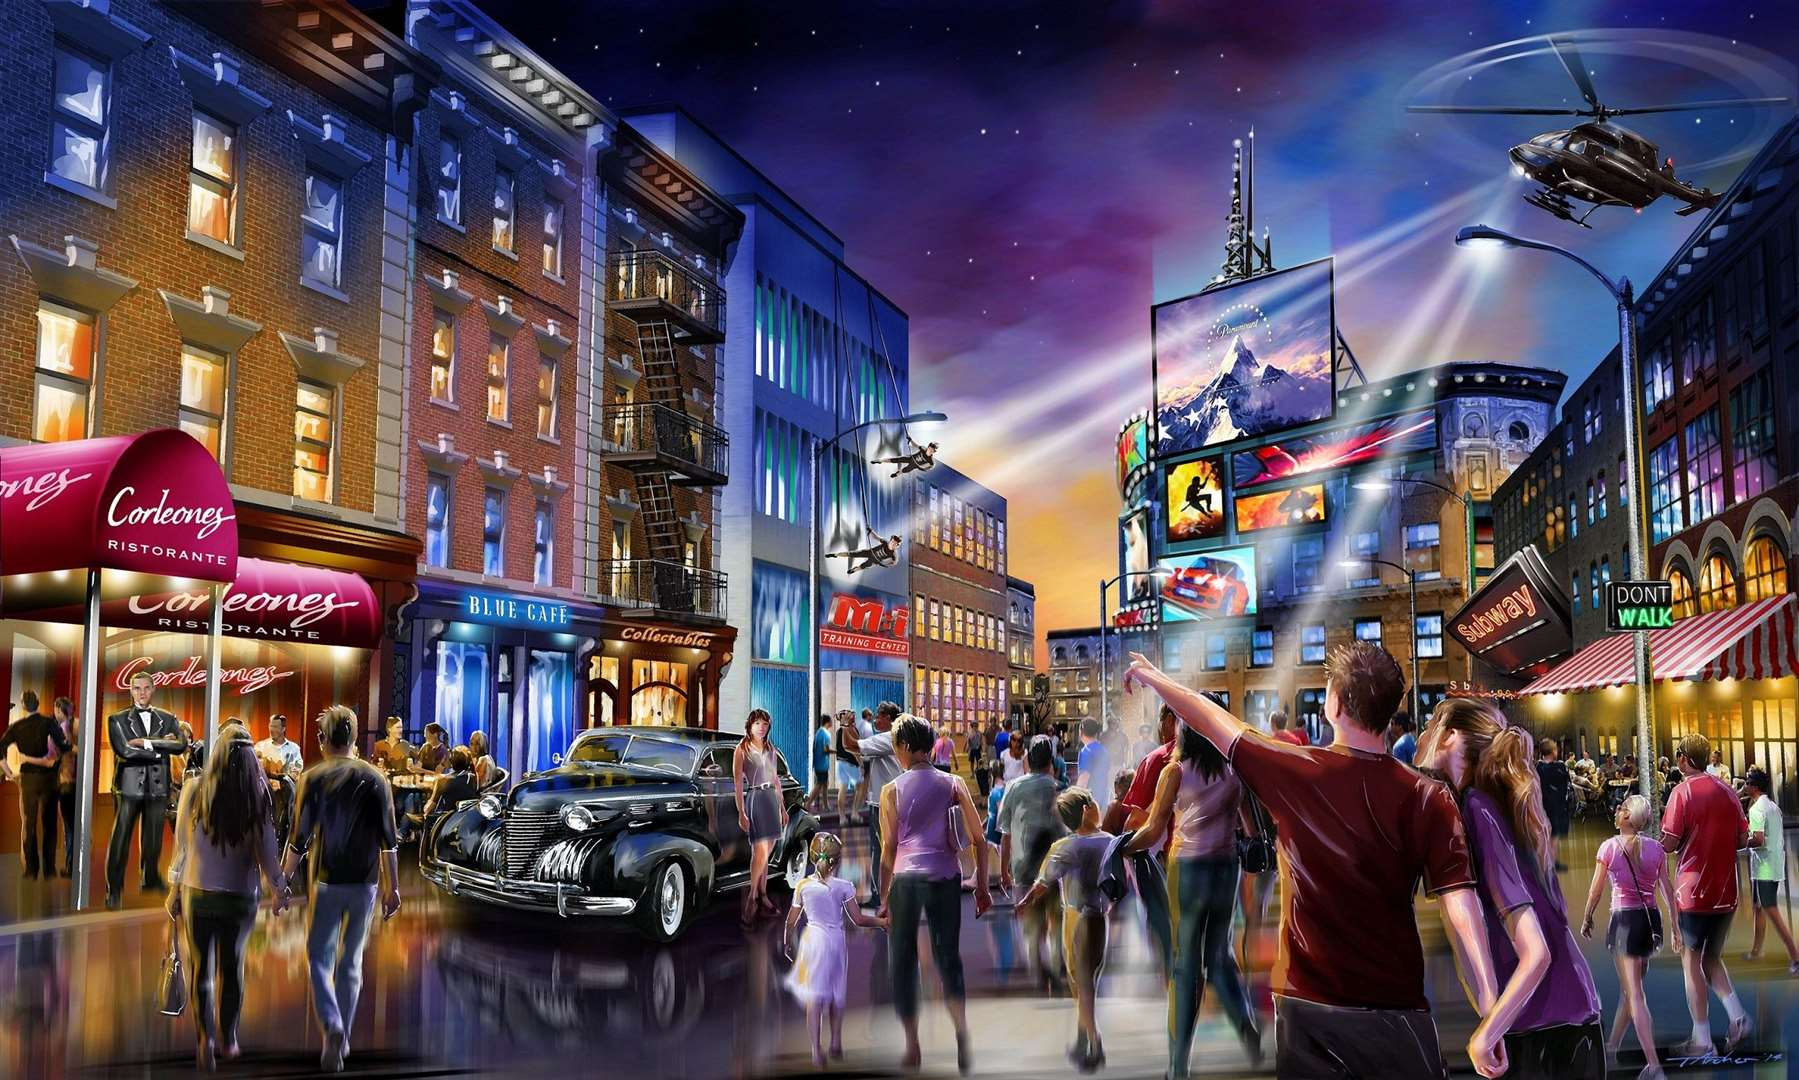 The £5 billion entertainment complex struck a deal with Hollywood film studio Paramount earlier this year.